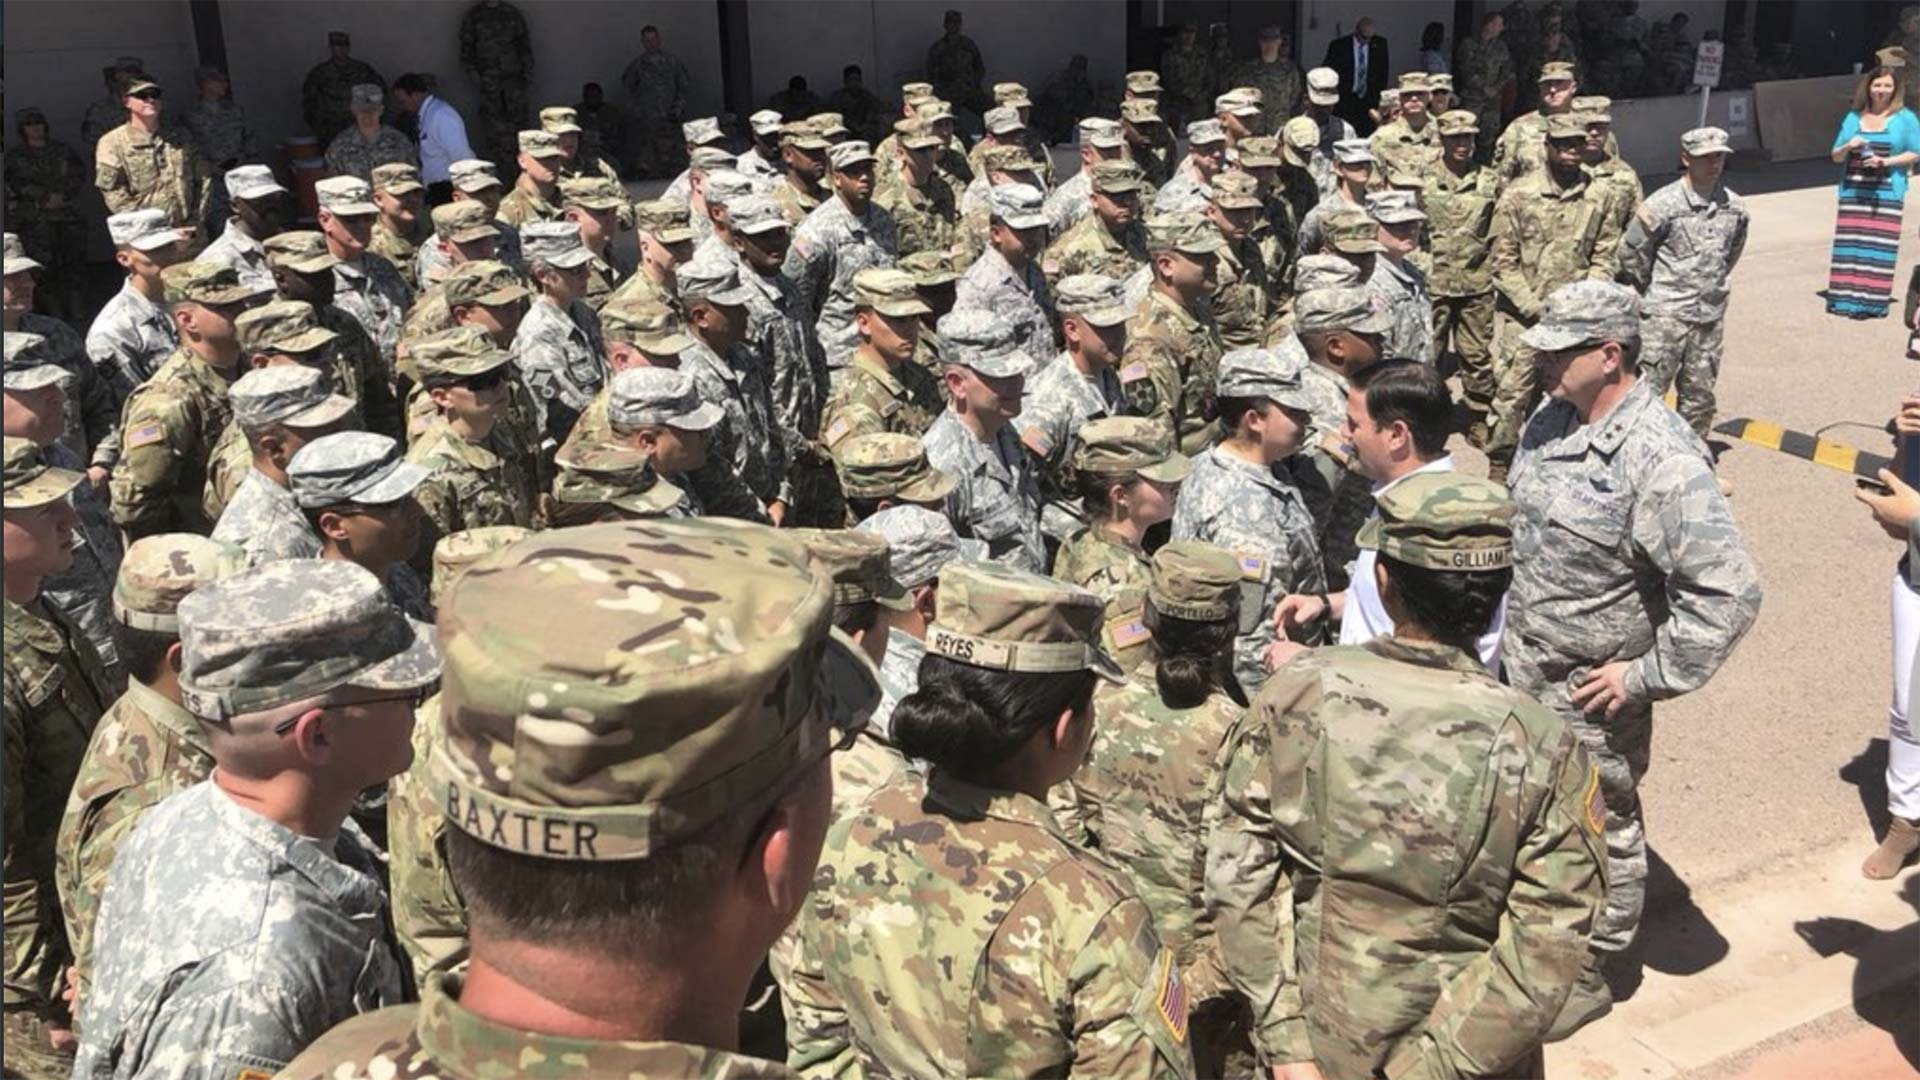 Gov. Doug Ducey with National Guard members being deployed to the Arizona-Mexico border, April 9, 2018.